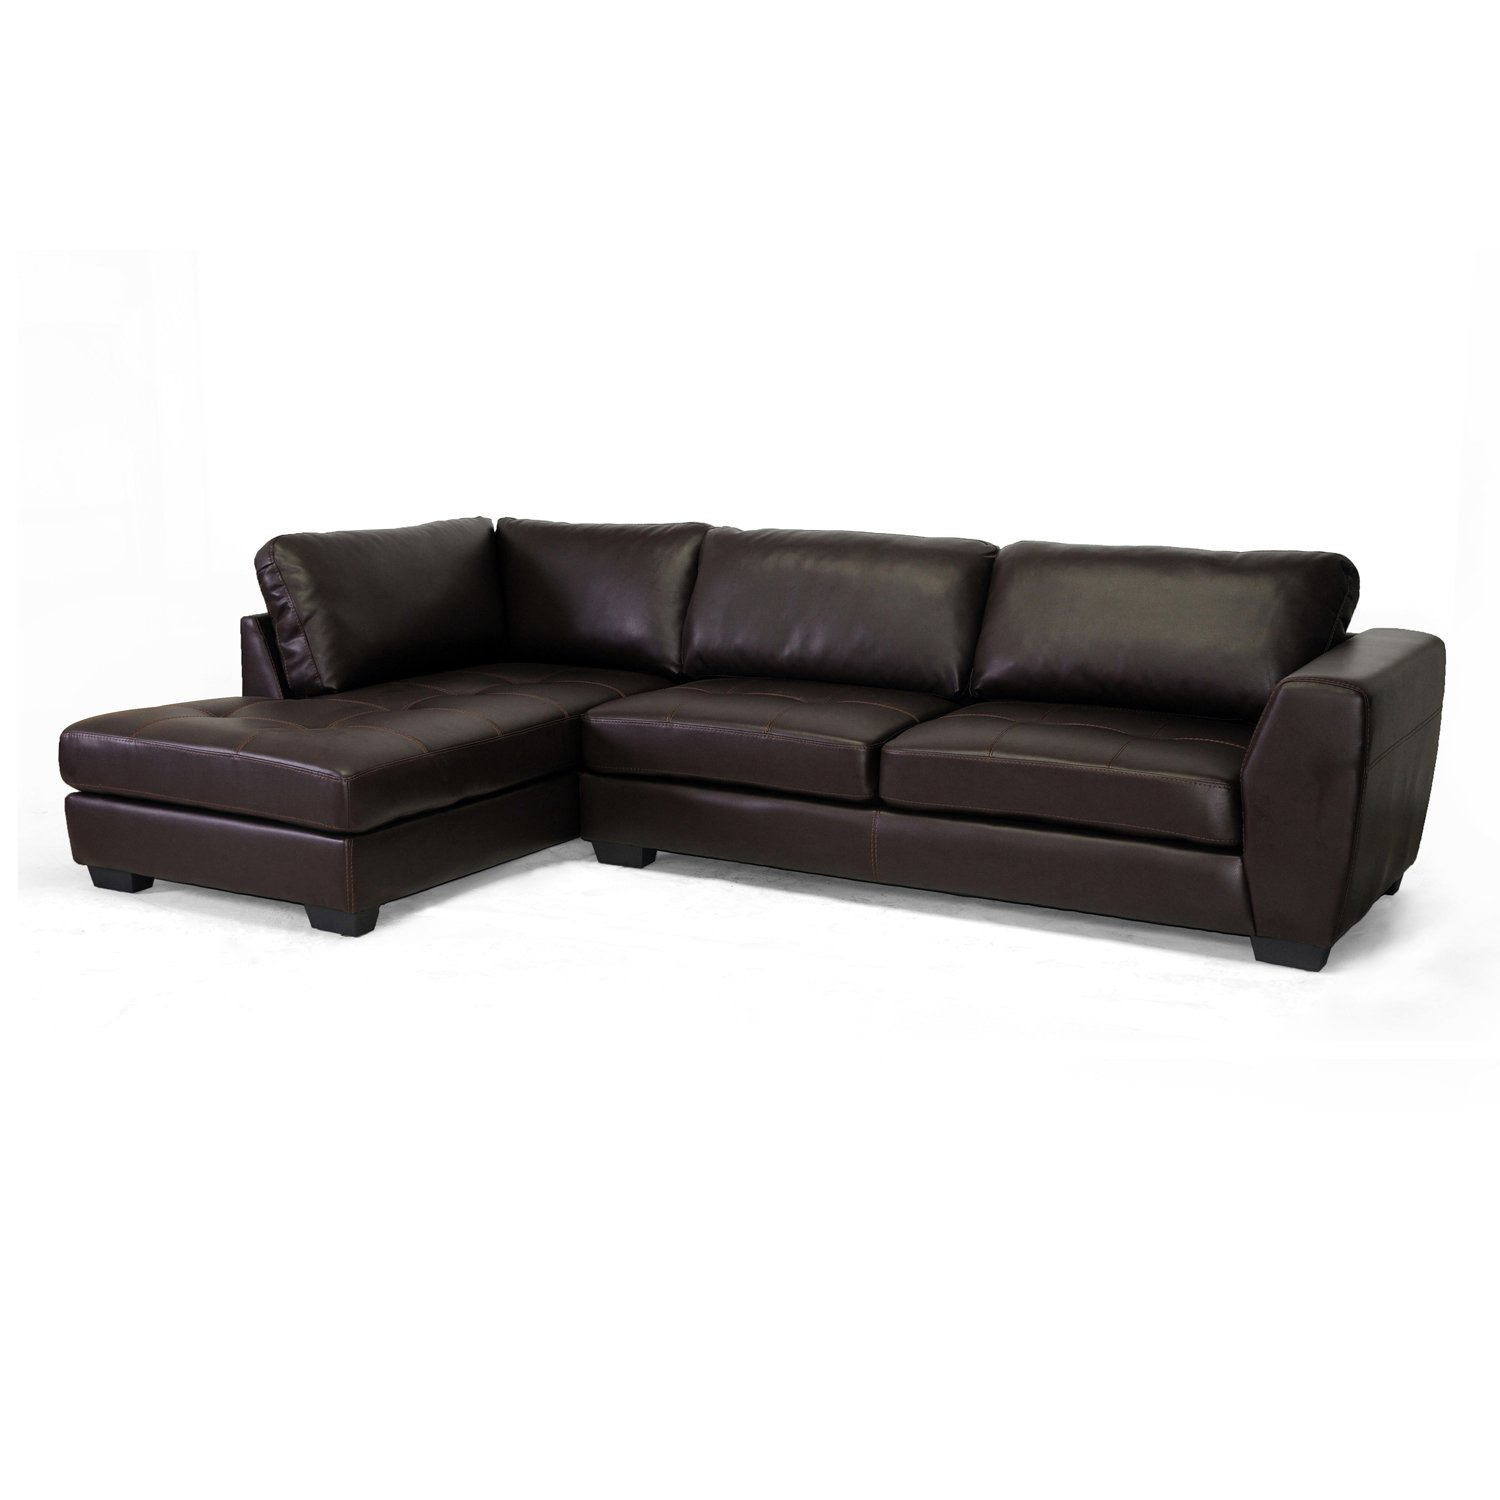 Baxton Studio Orland Leather Modern Sectional Sofa Set with Left Facing Chaise - Brown